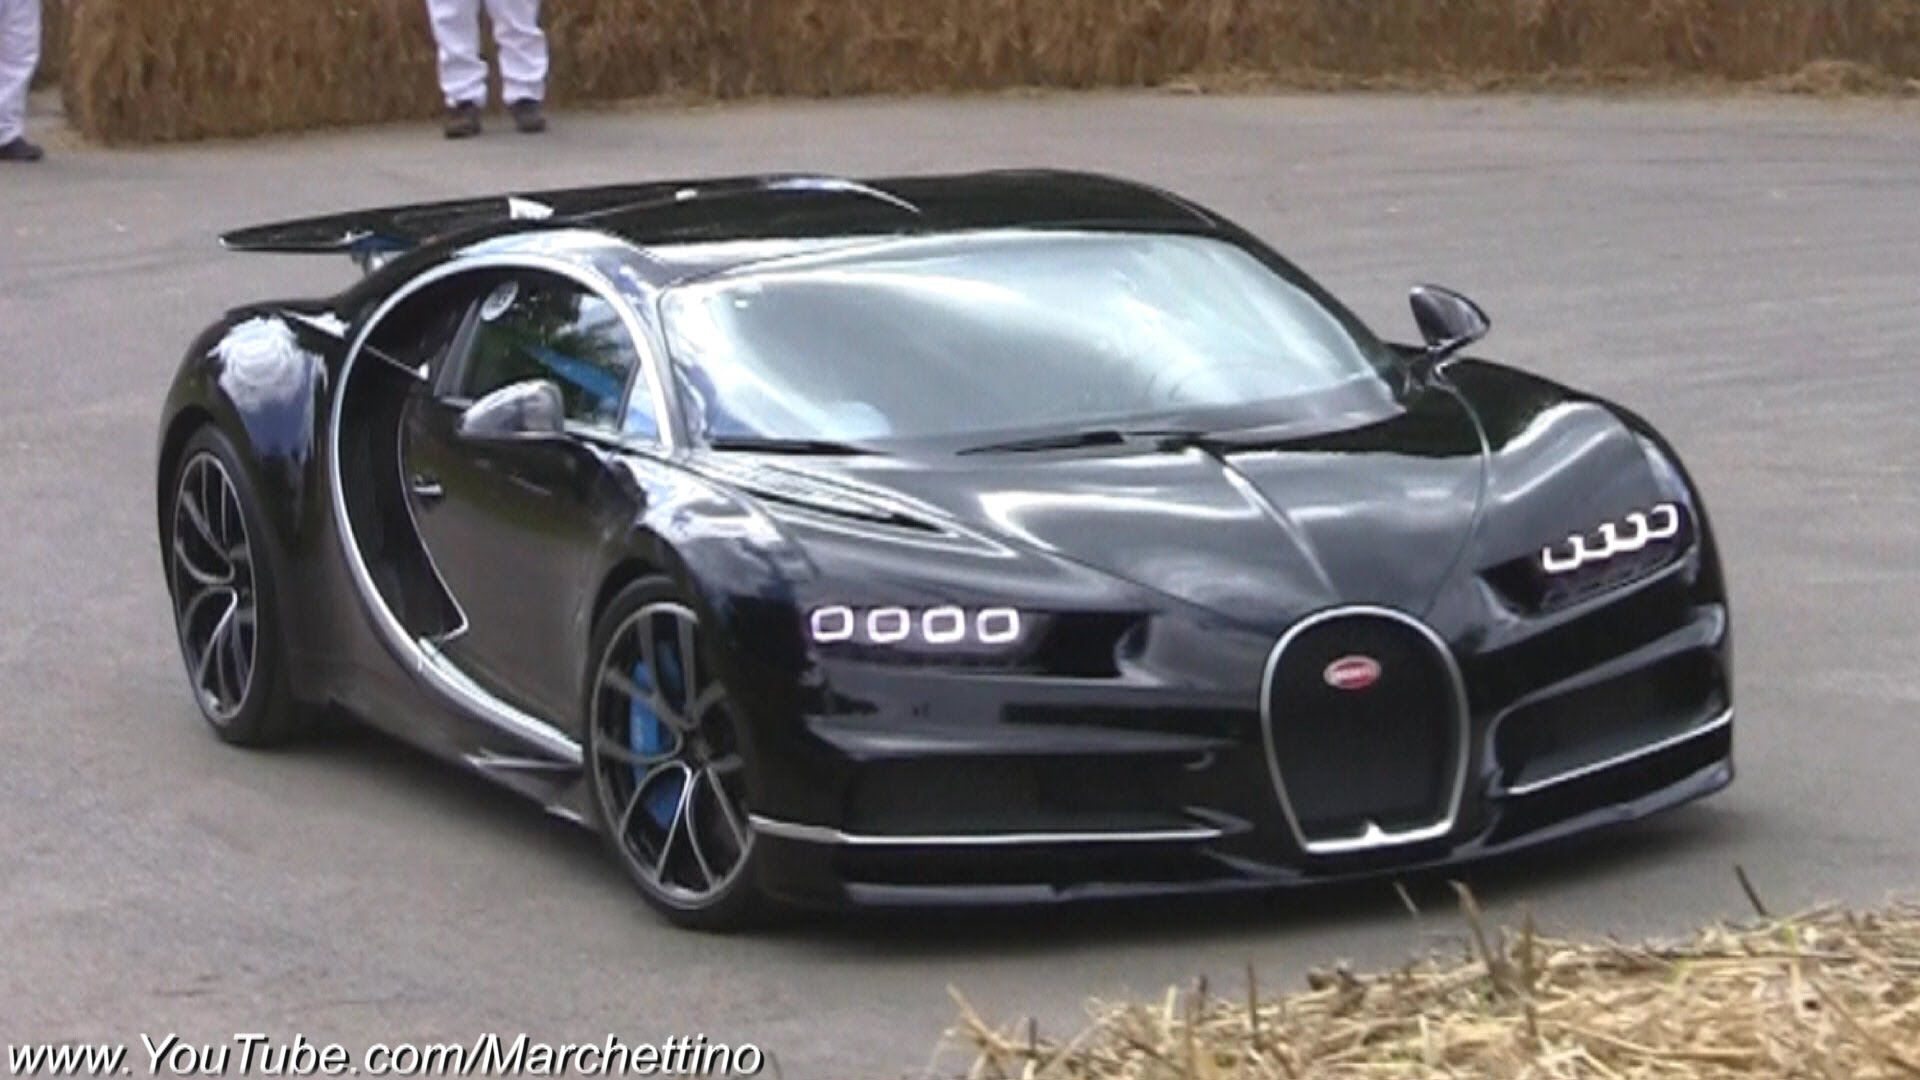 8242f298be0dcfc8e0d1c22a3922d9d6 Exciting Bugatti Veyron Zero to Sixty Cars Trend